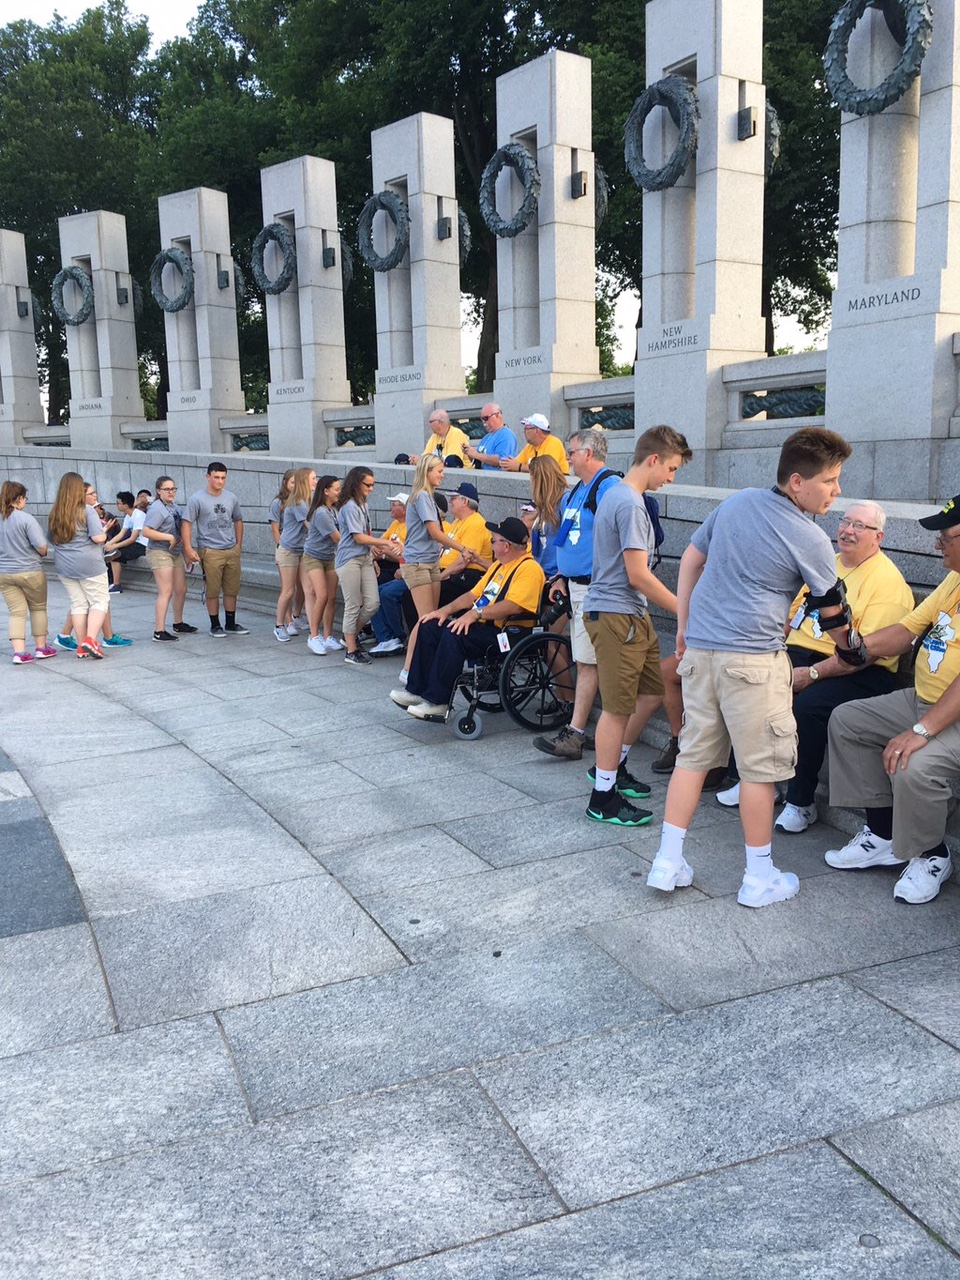 Our students were shaking hands and thanking veterans for their service at the WWII Memorial.